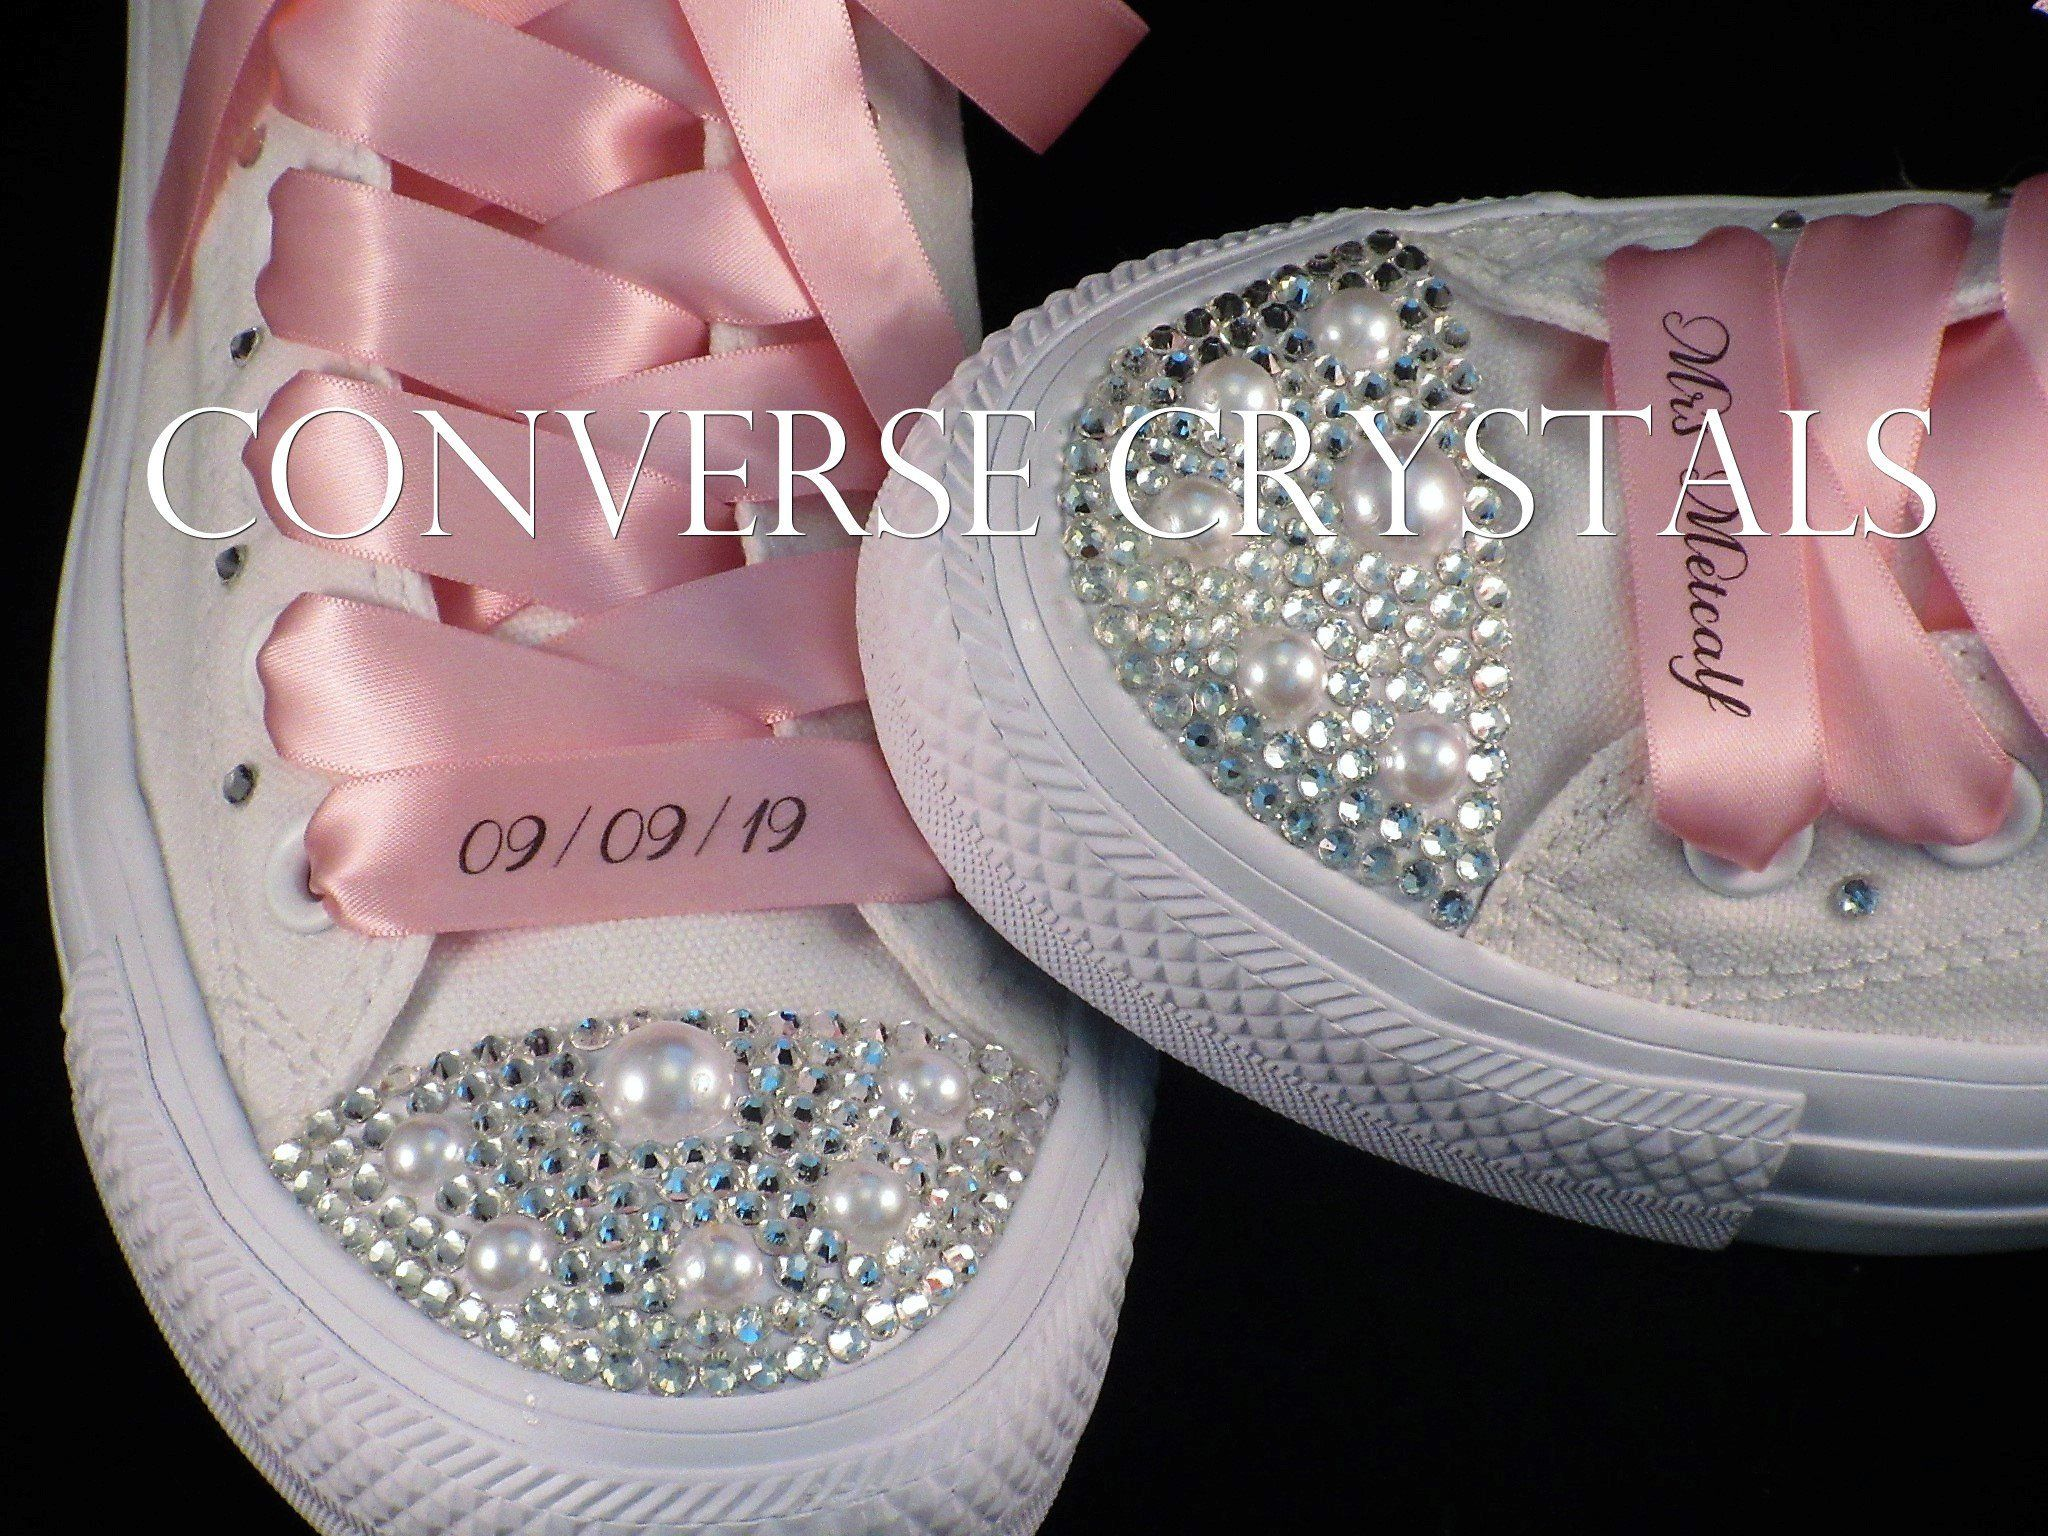 473cb8b79aad Personalised Name And Date Wedding Bridal Converse - Any Colour Ribbon And  Pearls-All sizes incl Half Sizes. by ConverseCrystals on Etsy